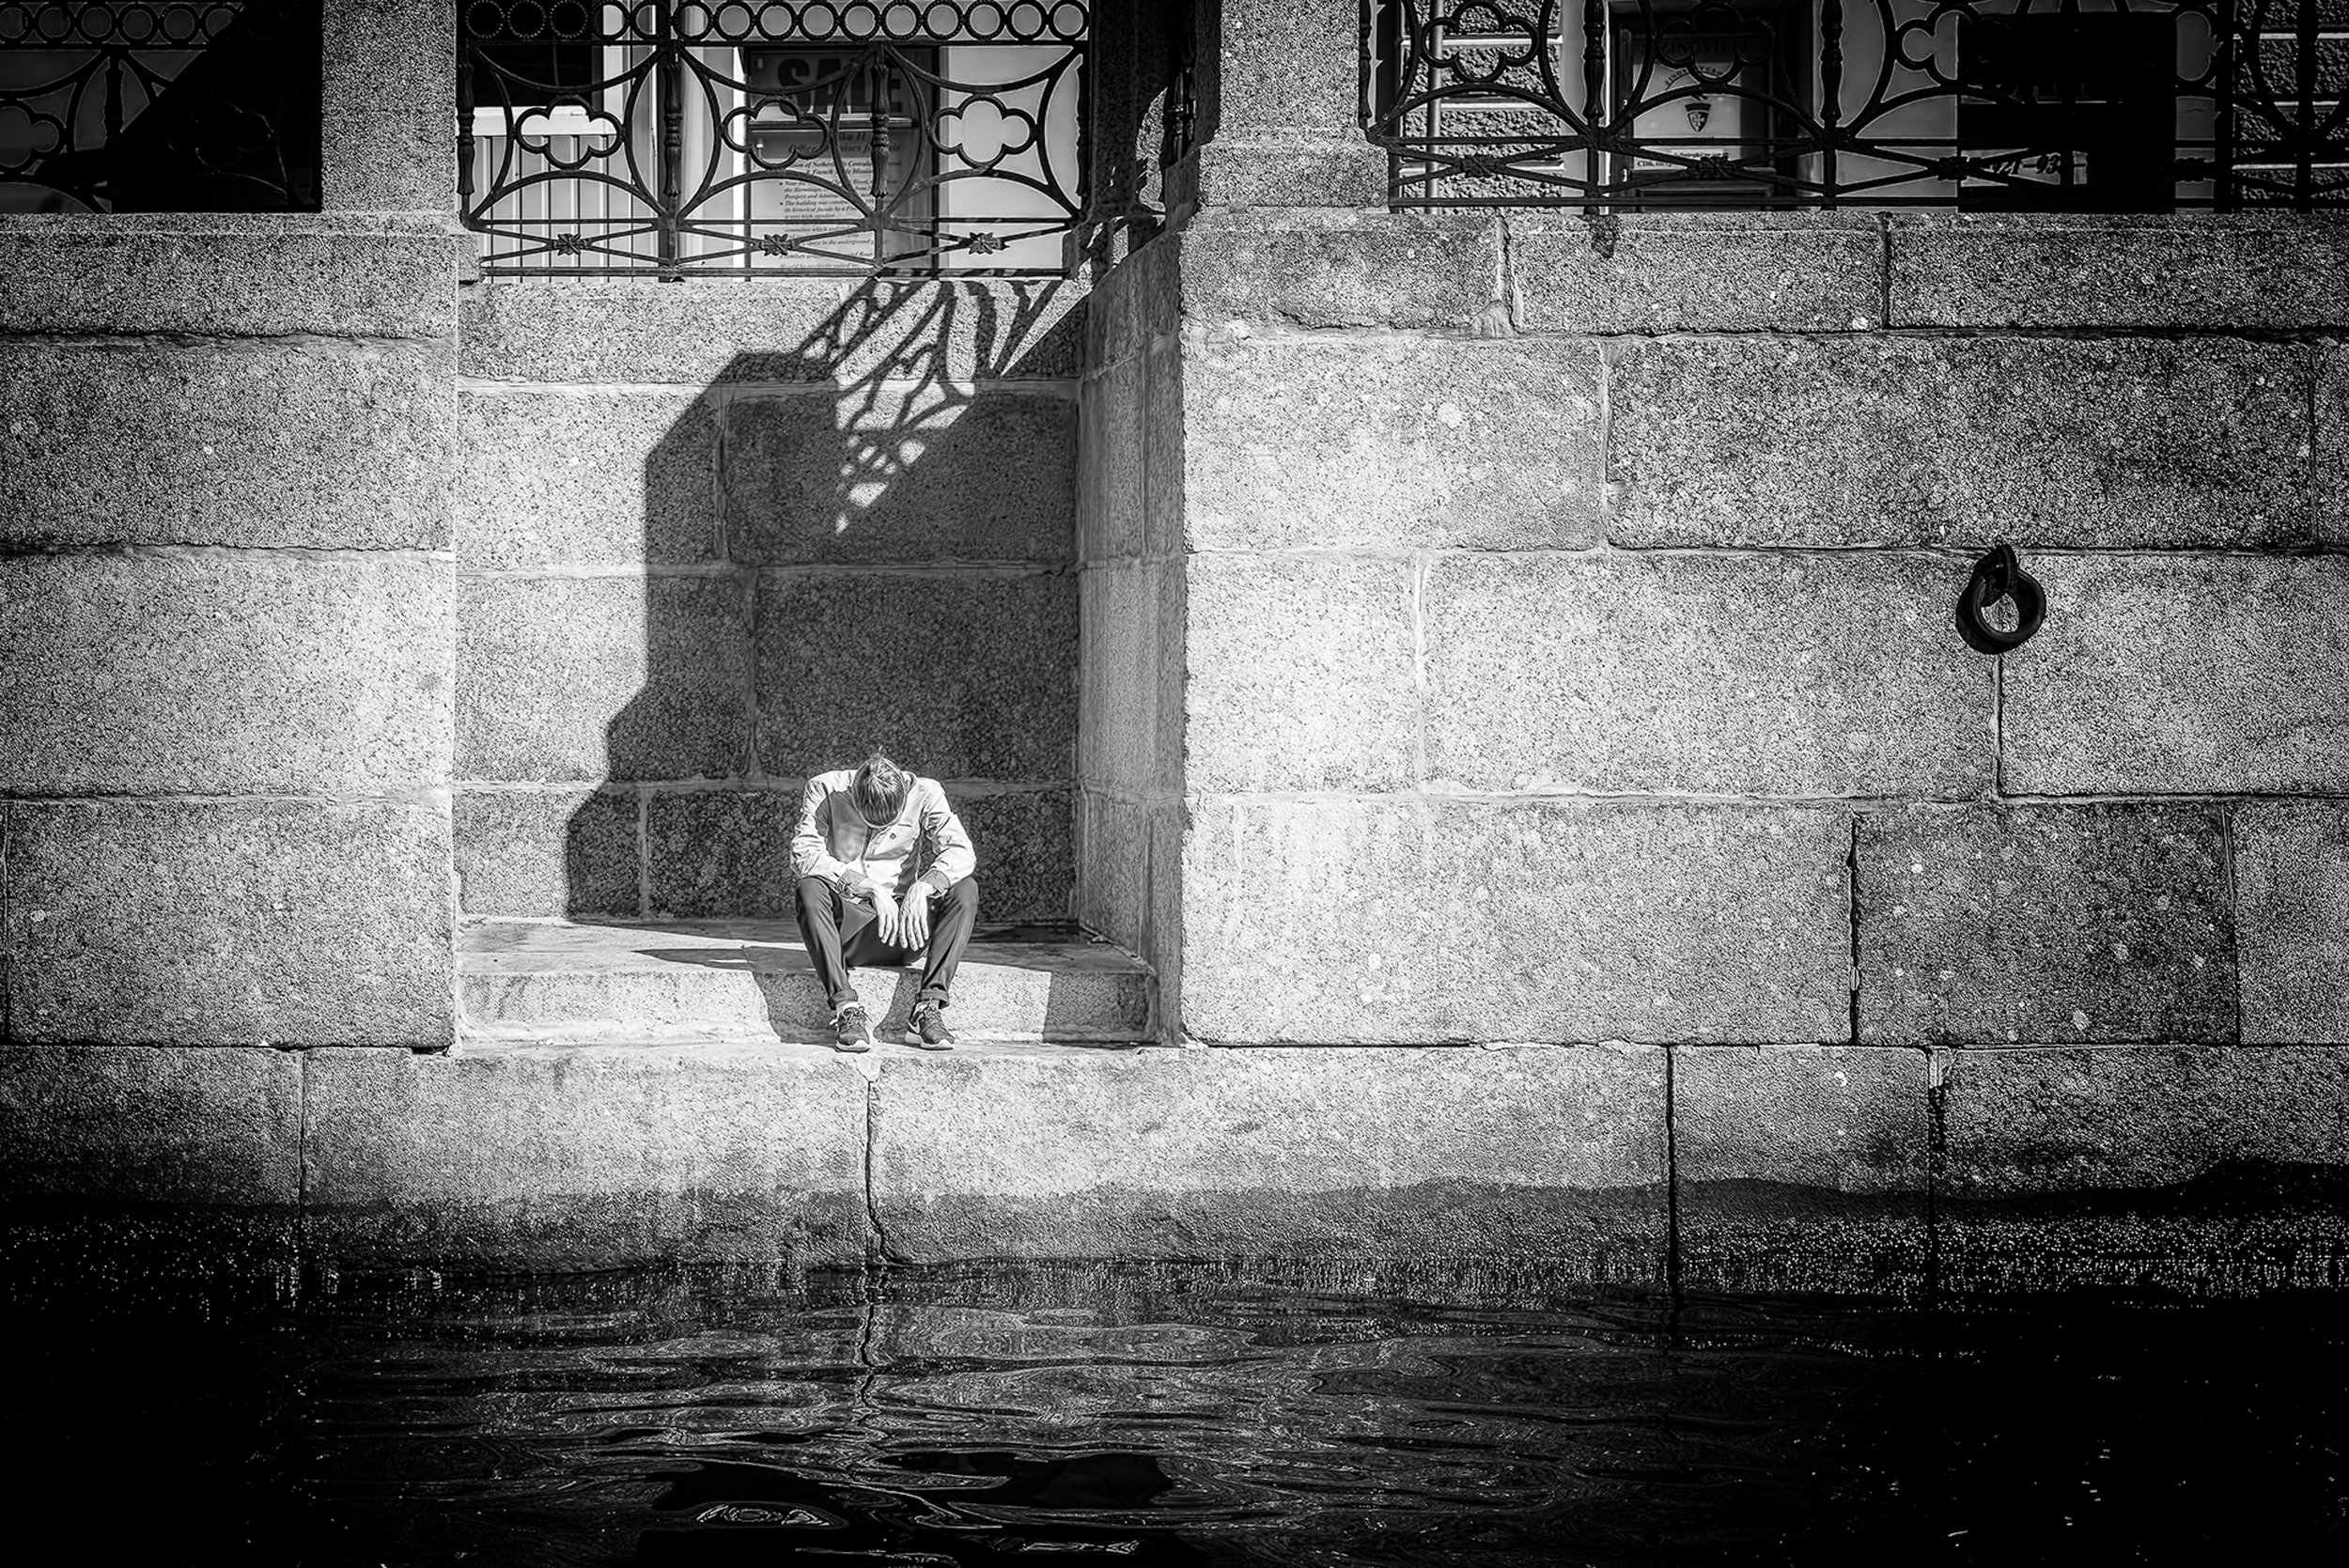 """Despair - Nikon D750, 1/100 @ f/4.0, ISO200, 120mm. Processed in Silver Efex Pro. This photograph was taken along one of the many canals in St. Petersburg, Russia. It was an early morning shot, so I'm guessing this guy had a tough night. See the poem """"I Often Think of the Color Black"""" in the Poetry Section."""